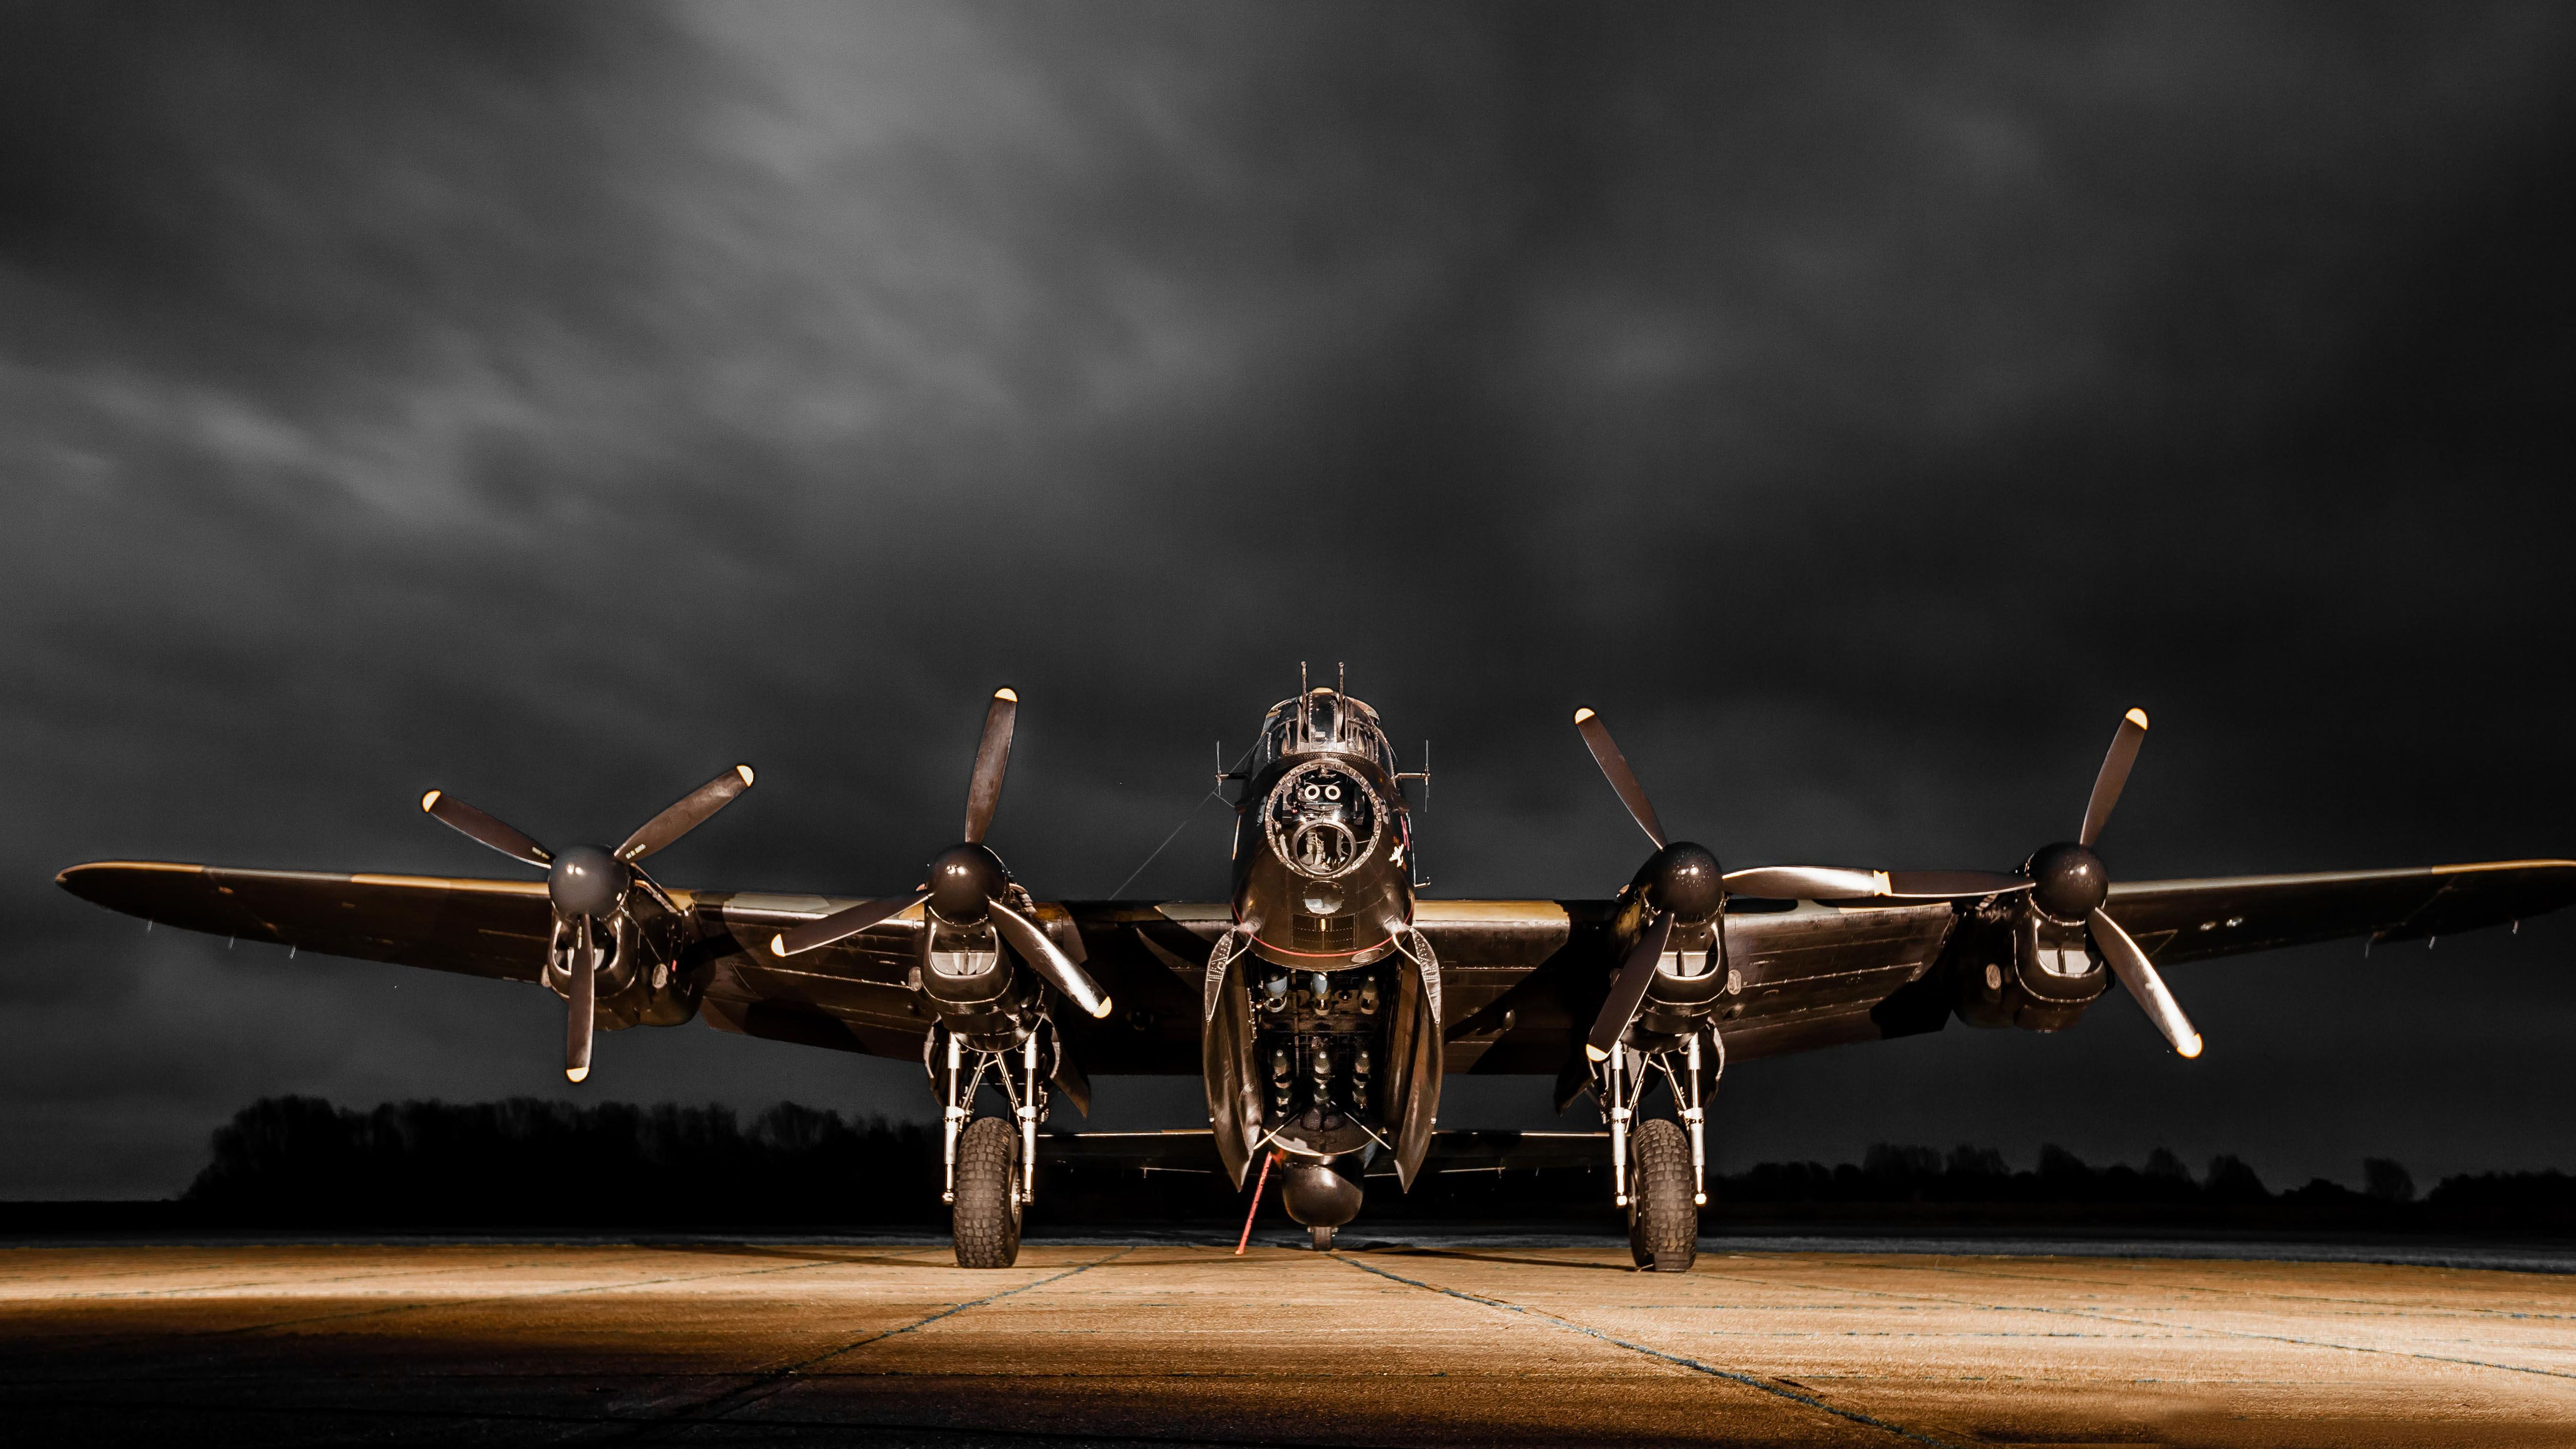 Planes Wallpapers : Wallpapers13